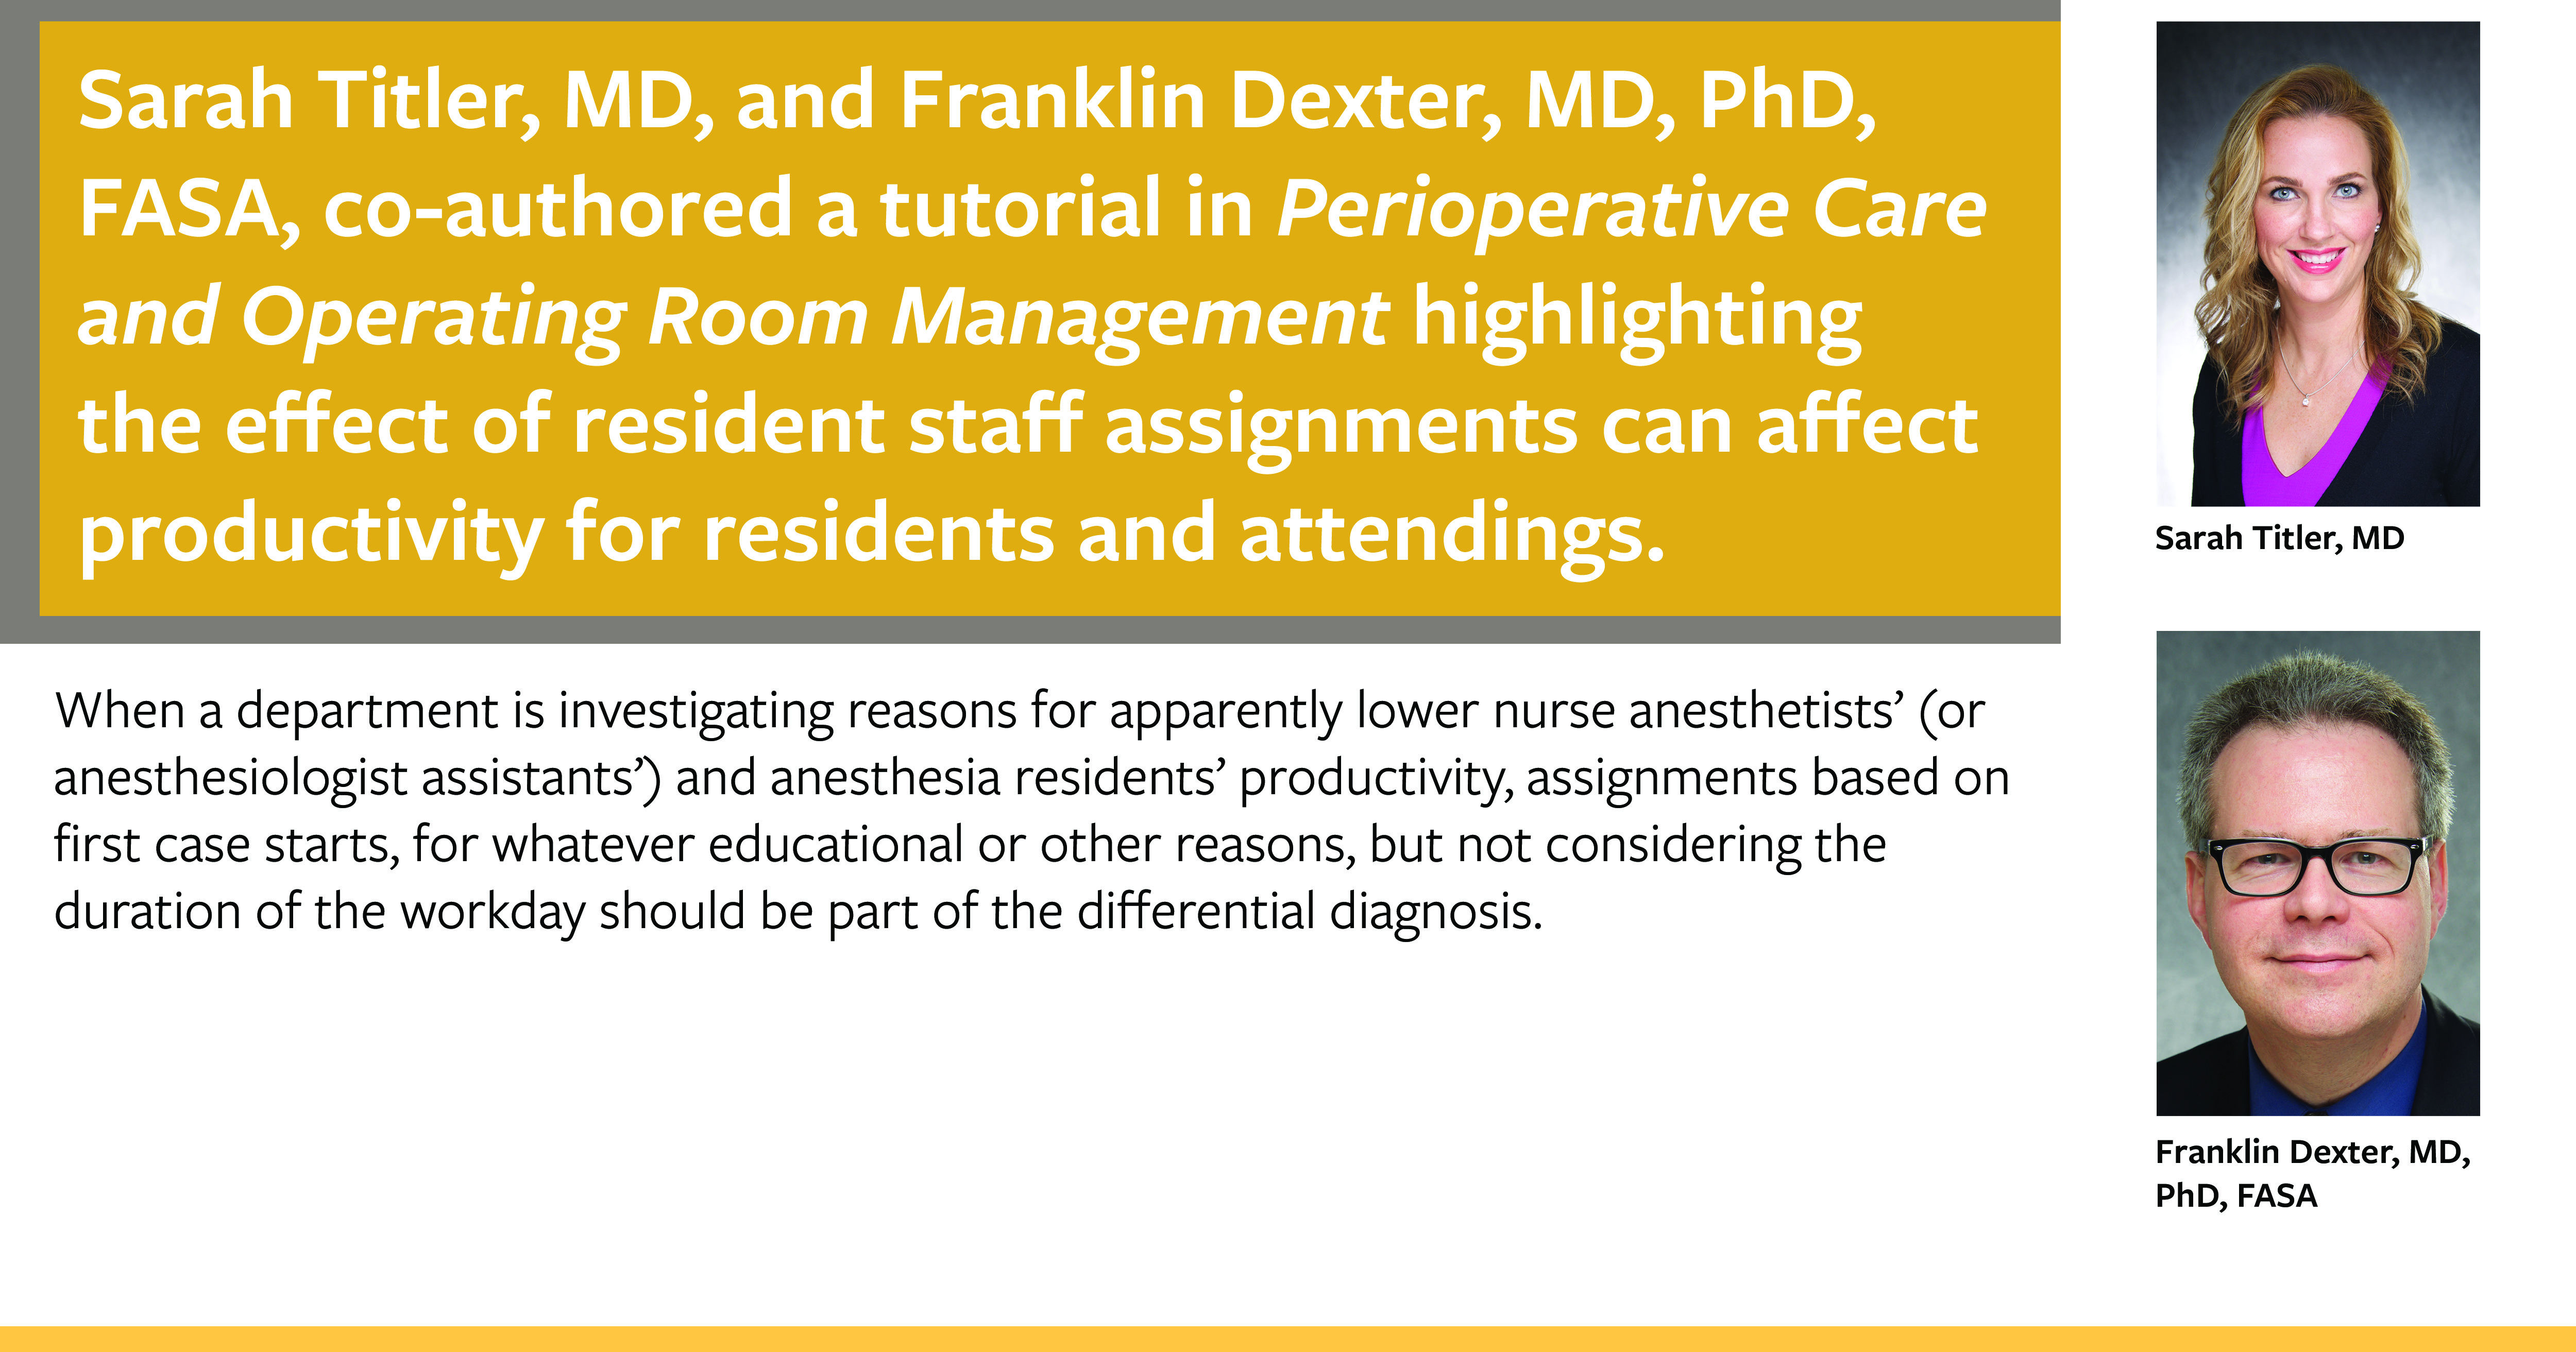 Drs. Titler and Dexter co-authored a tutorial on resident assignments and productivity